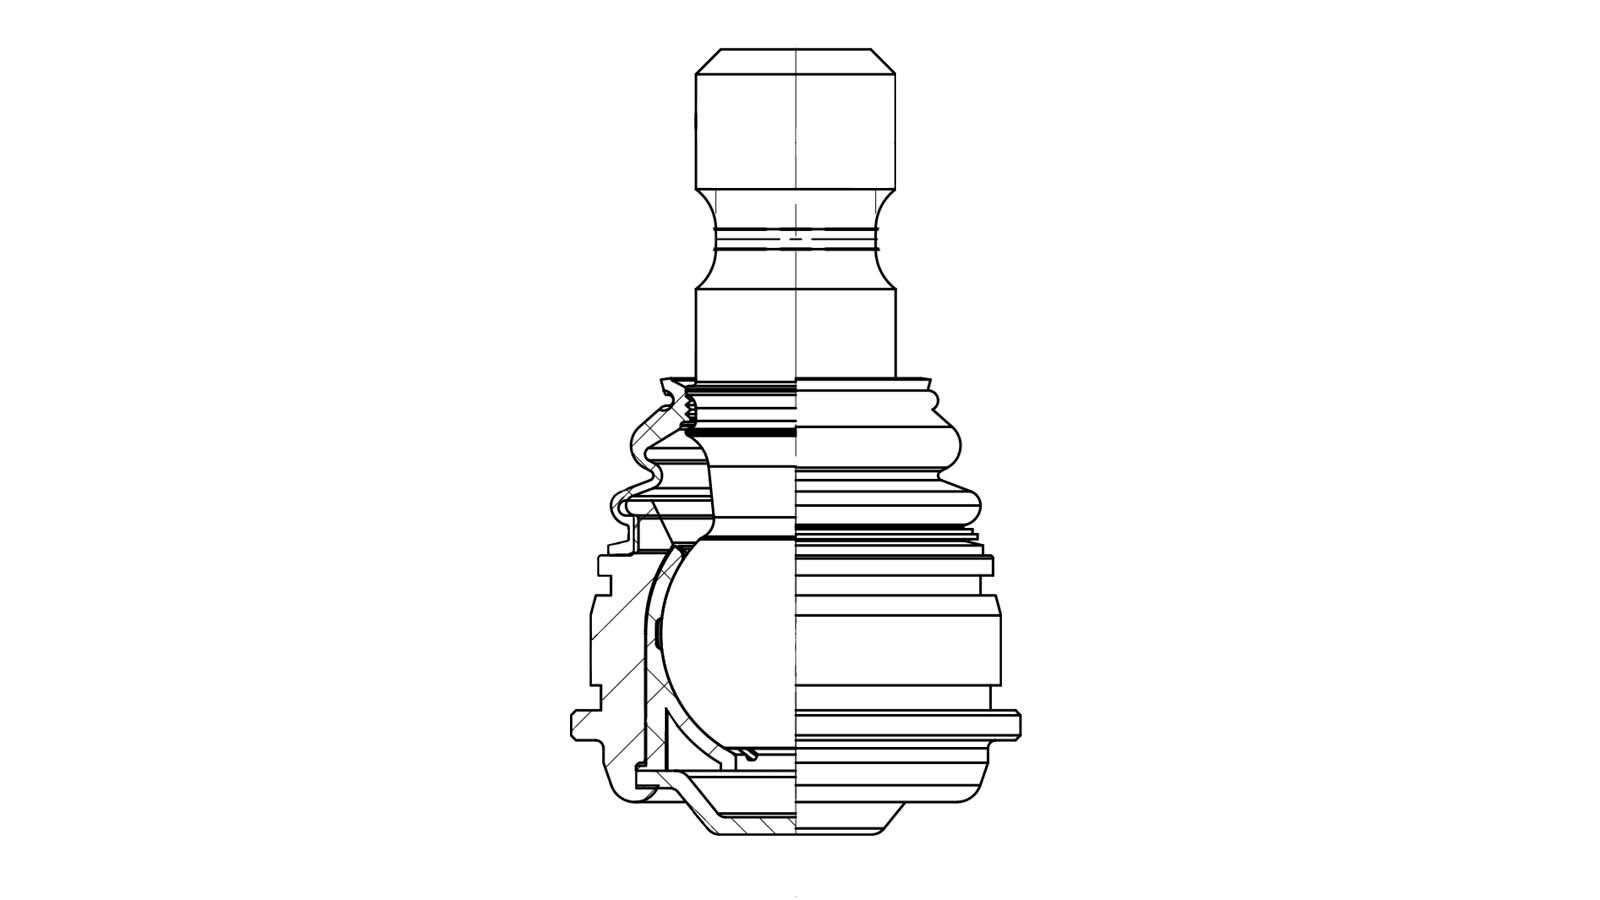 NA Website 2021 Sidem visual ridged ball joints technical drawing